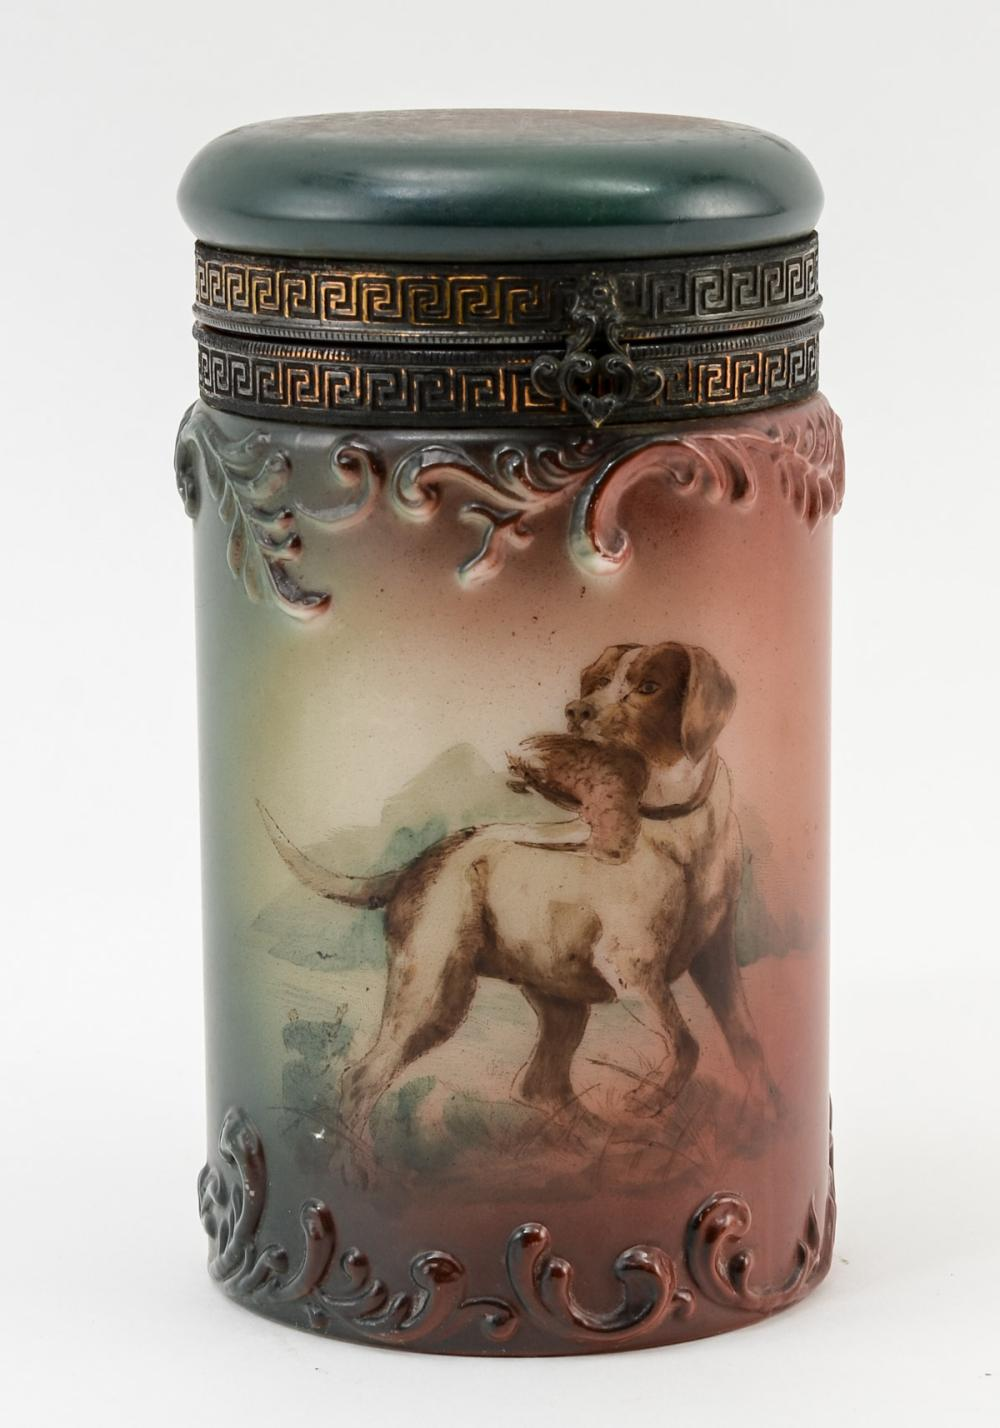 Handel Ware Glass Cigar Humidor w/ dog